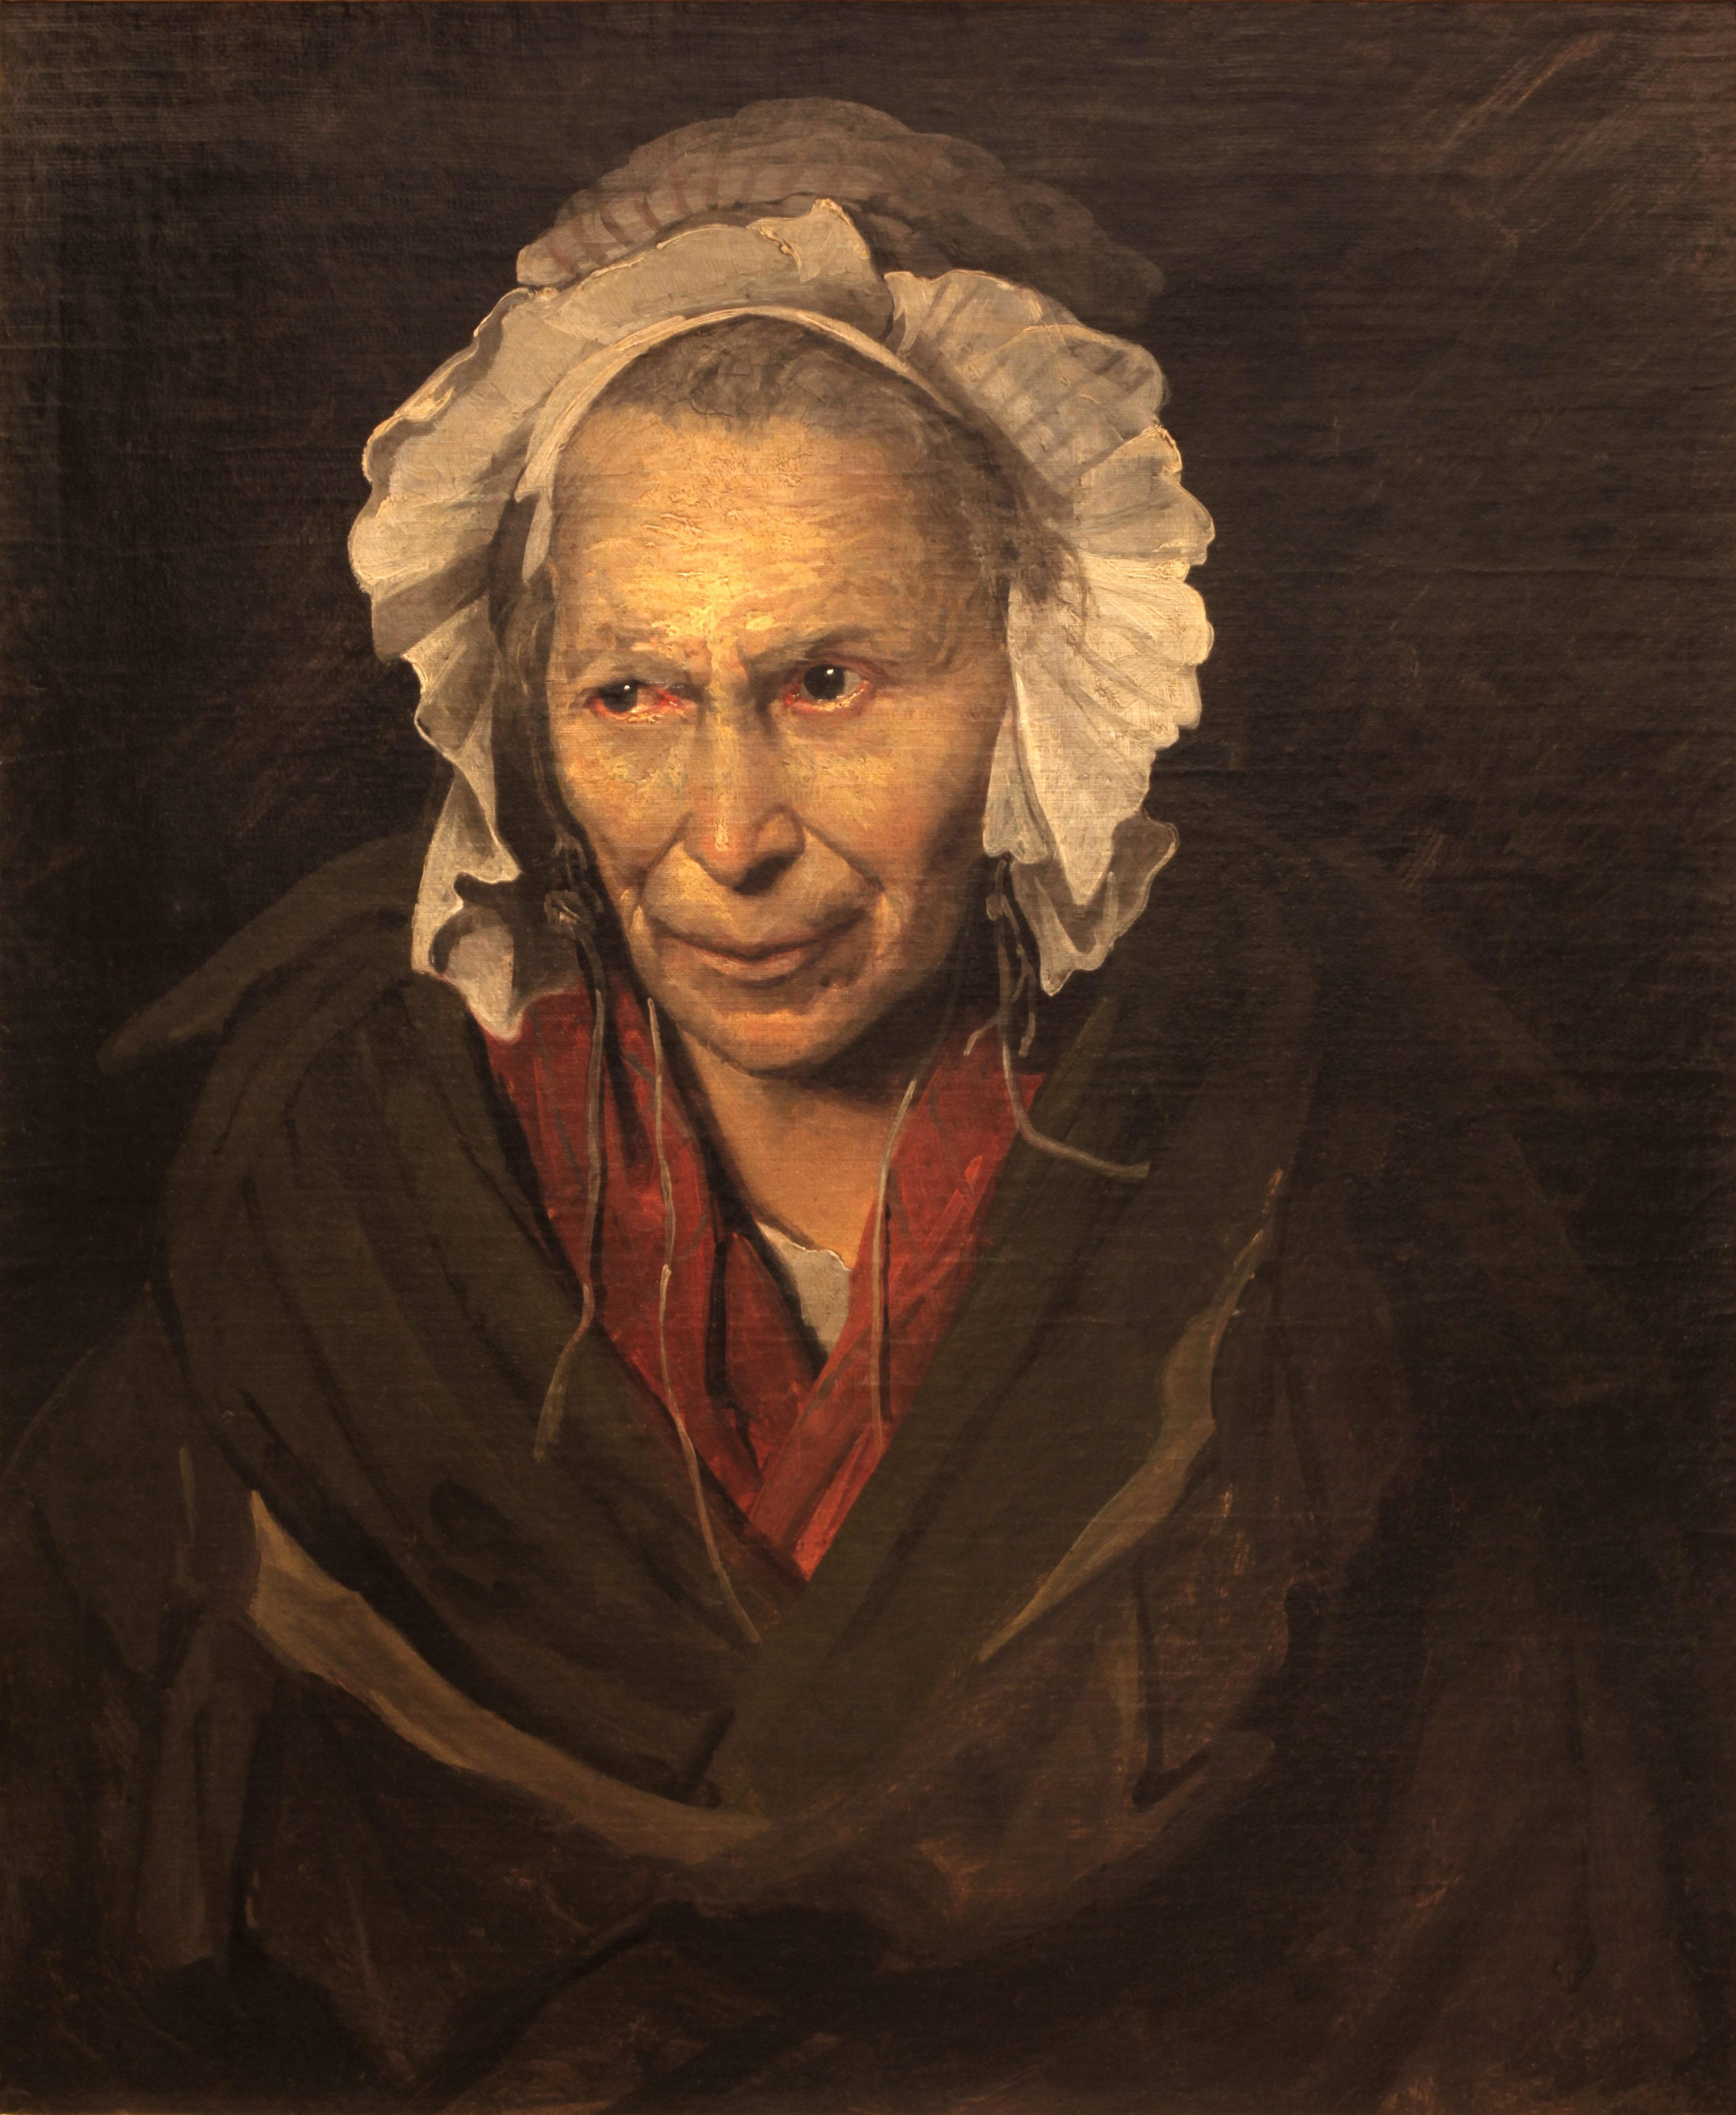 Théodore Géricault, Portrait of a Woman Suffering from Obsessive Envy